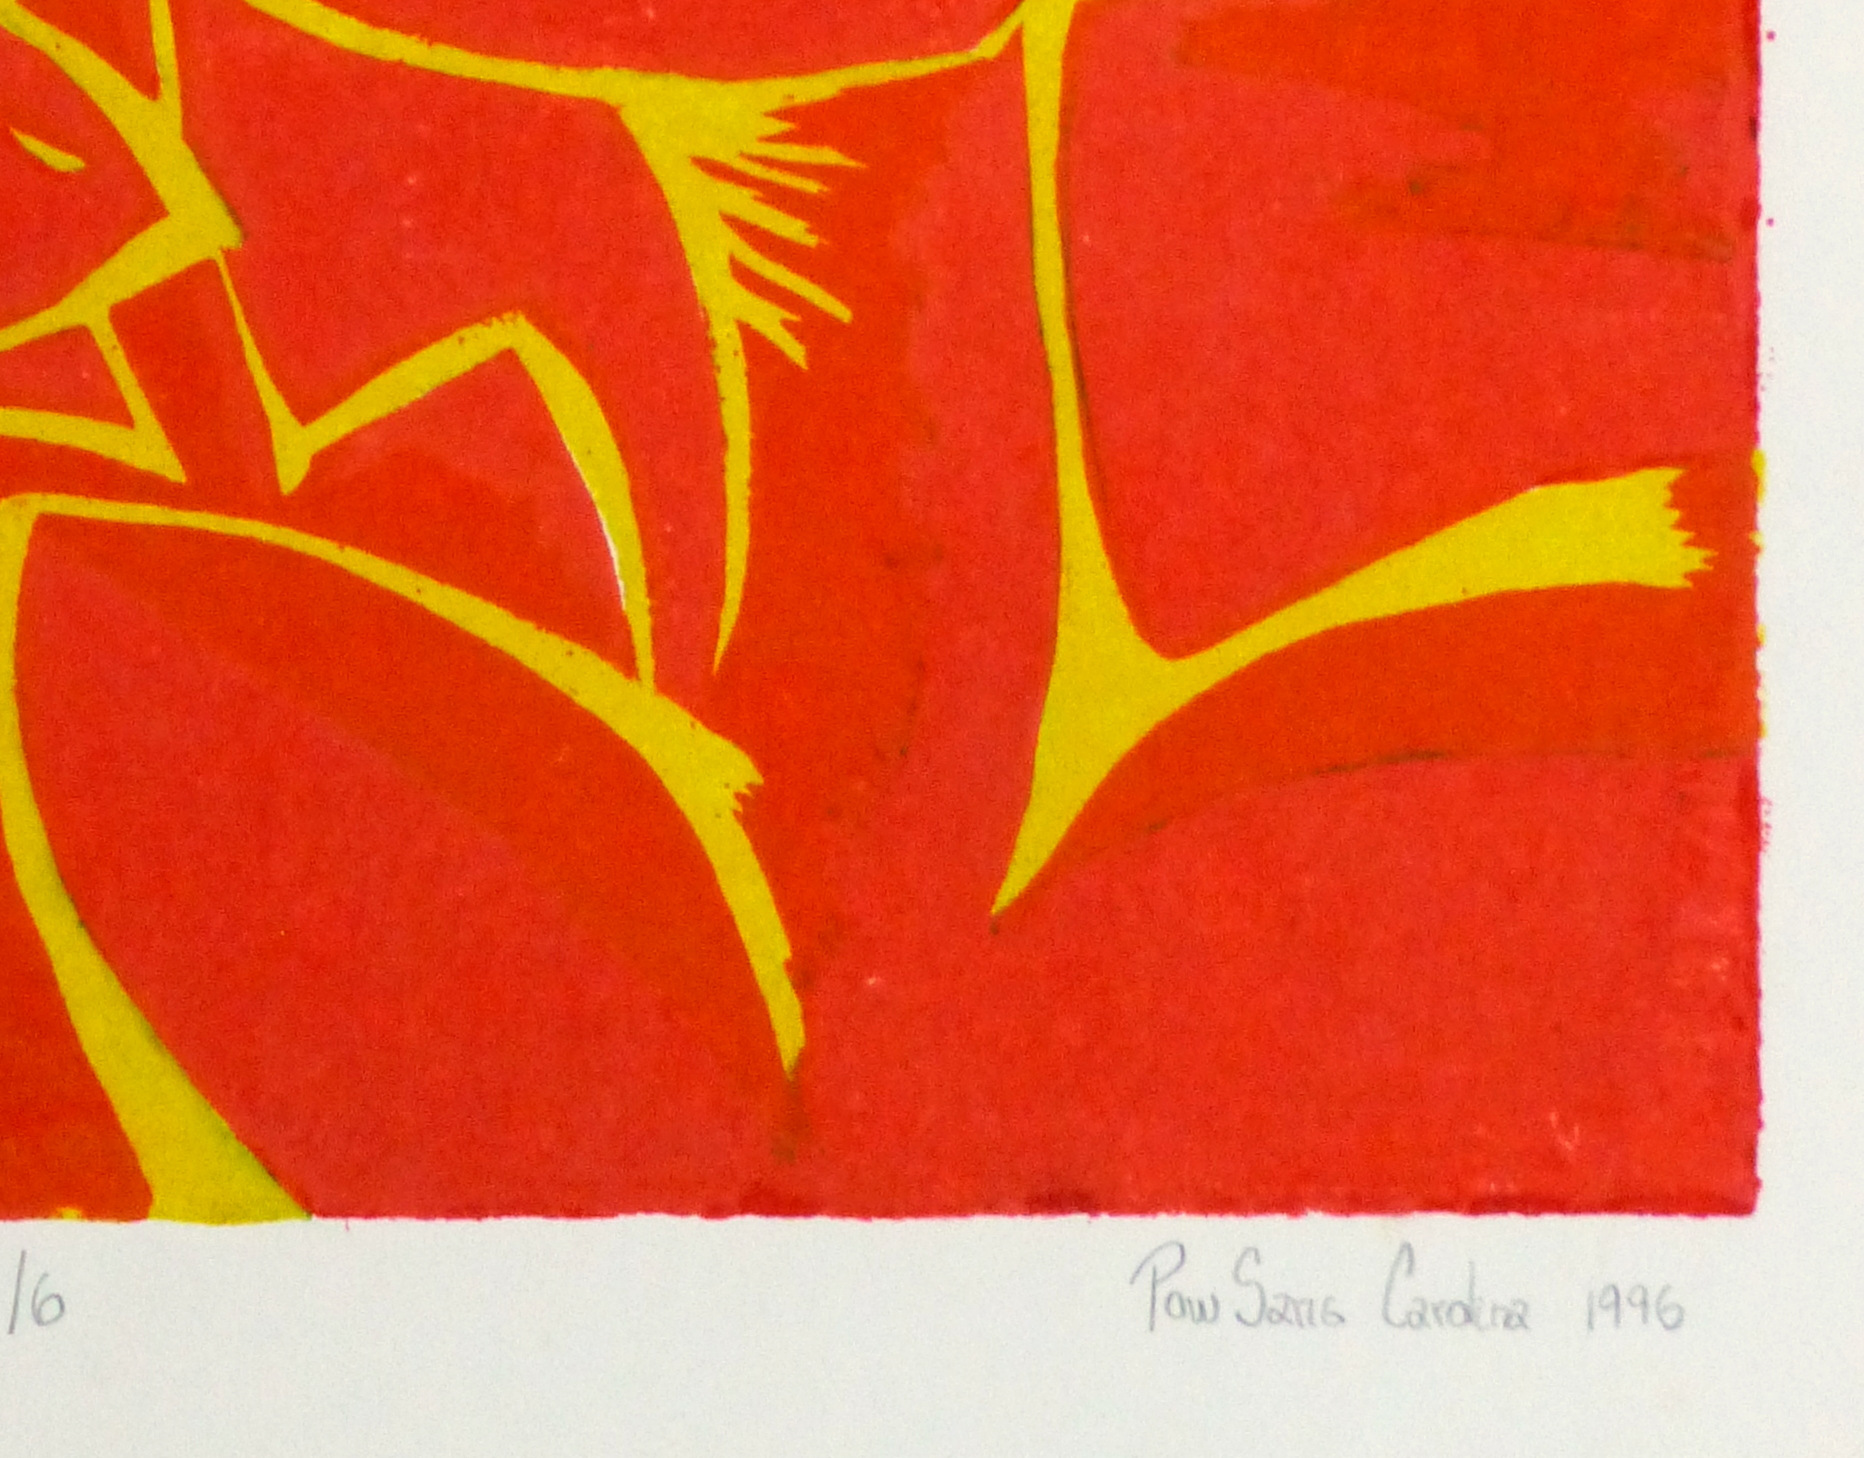 Abstract Woodcut - Trihelio III, 1996-detail-10465M